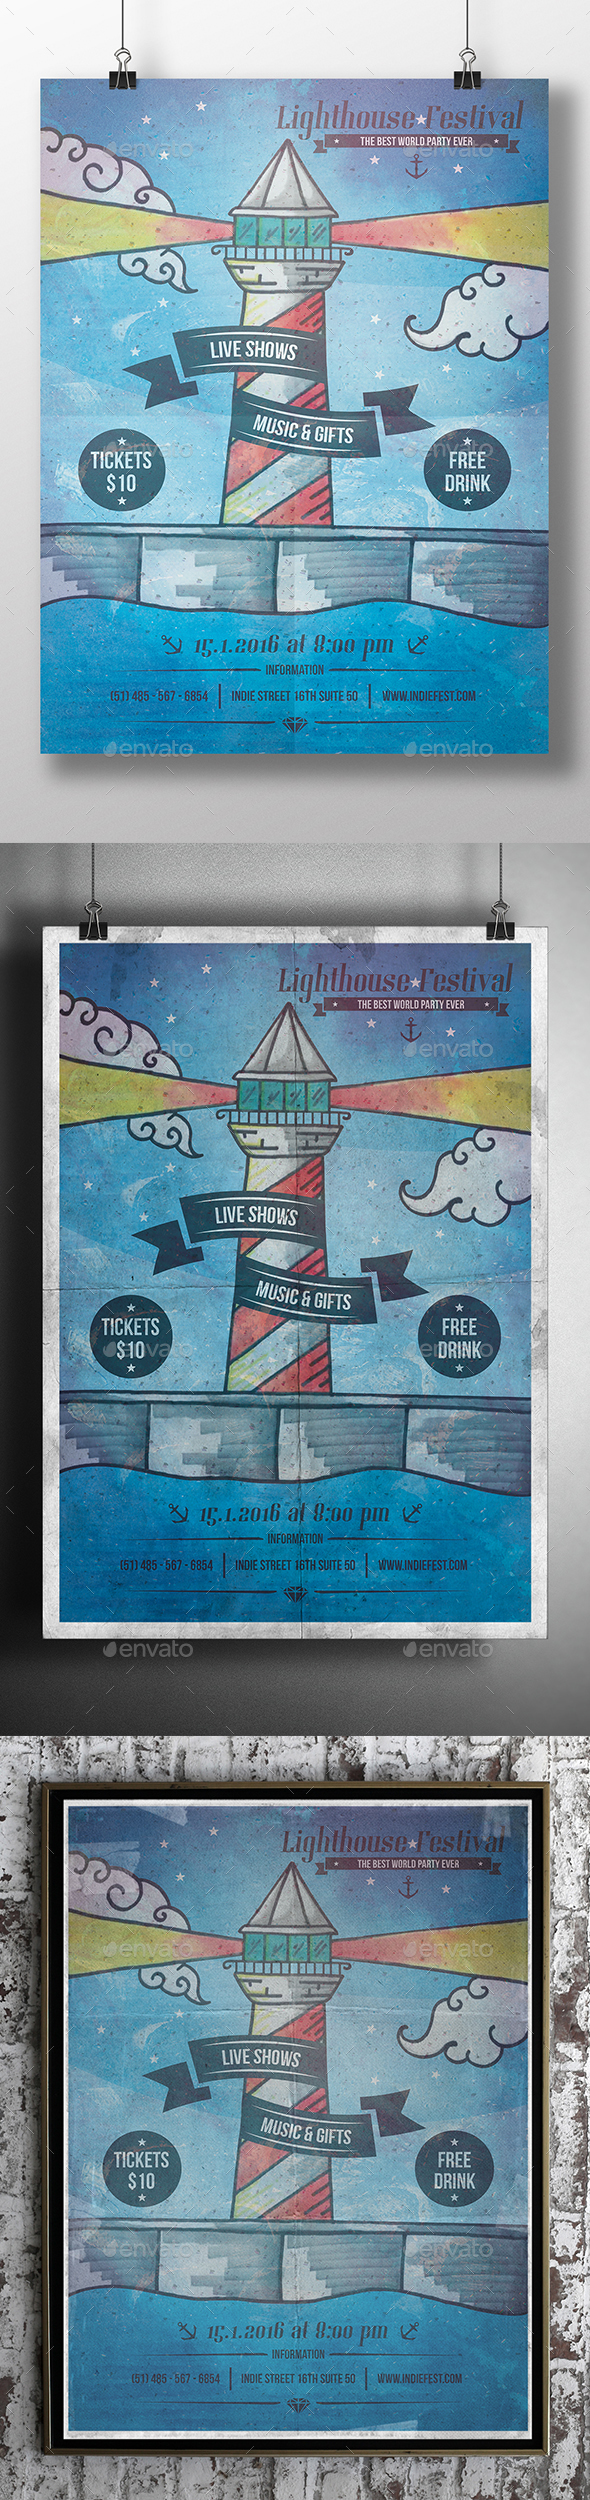 Lighthouse Poster Flyer - Concerts Events